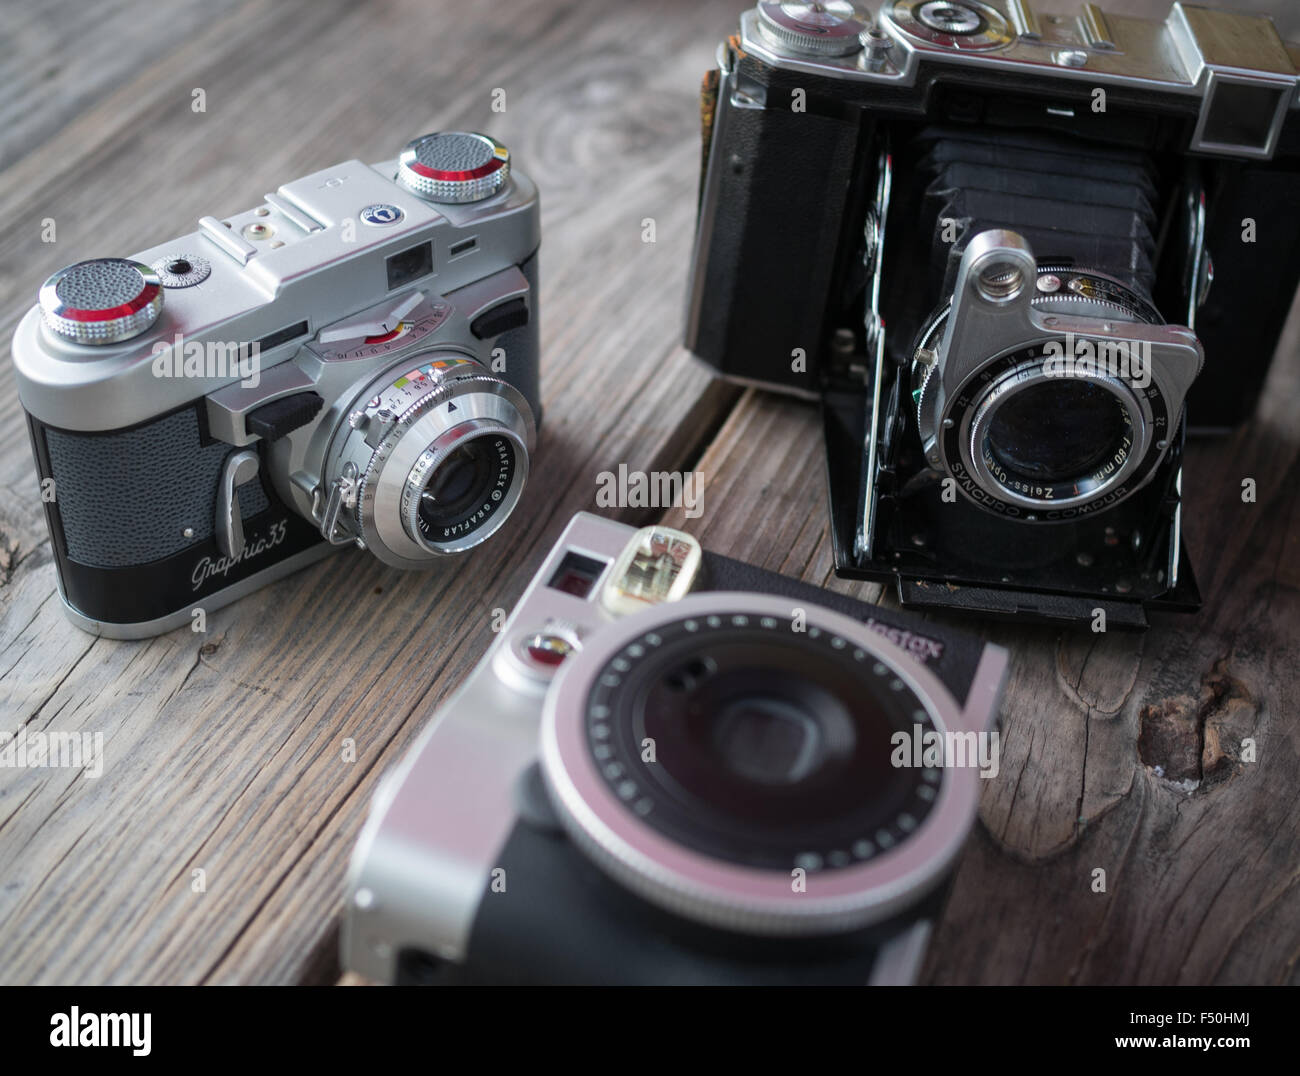 A collection of vintage and retro looking film cameras - Stock Image